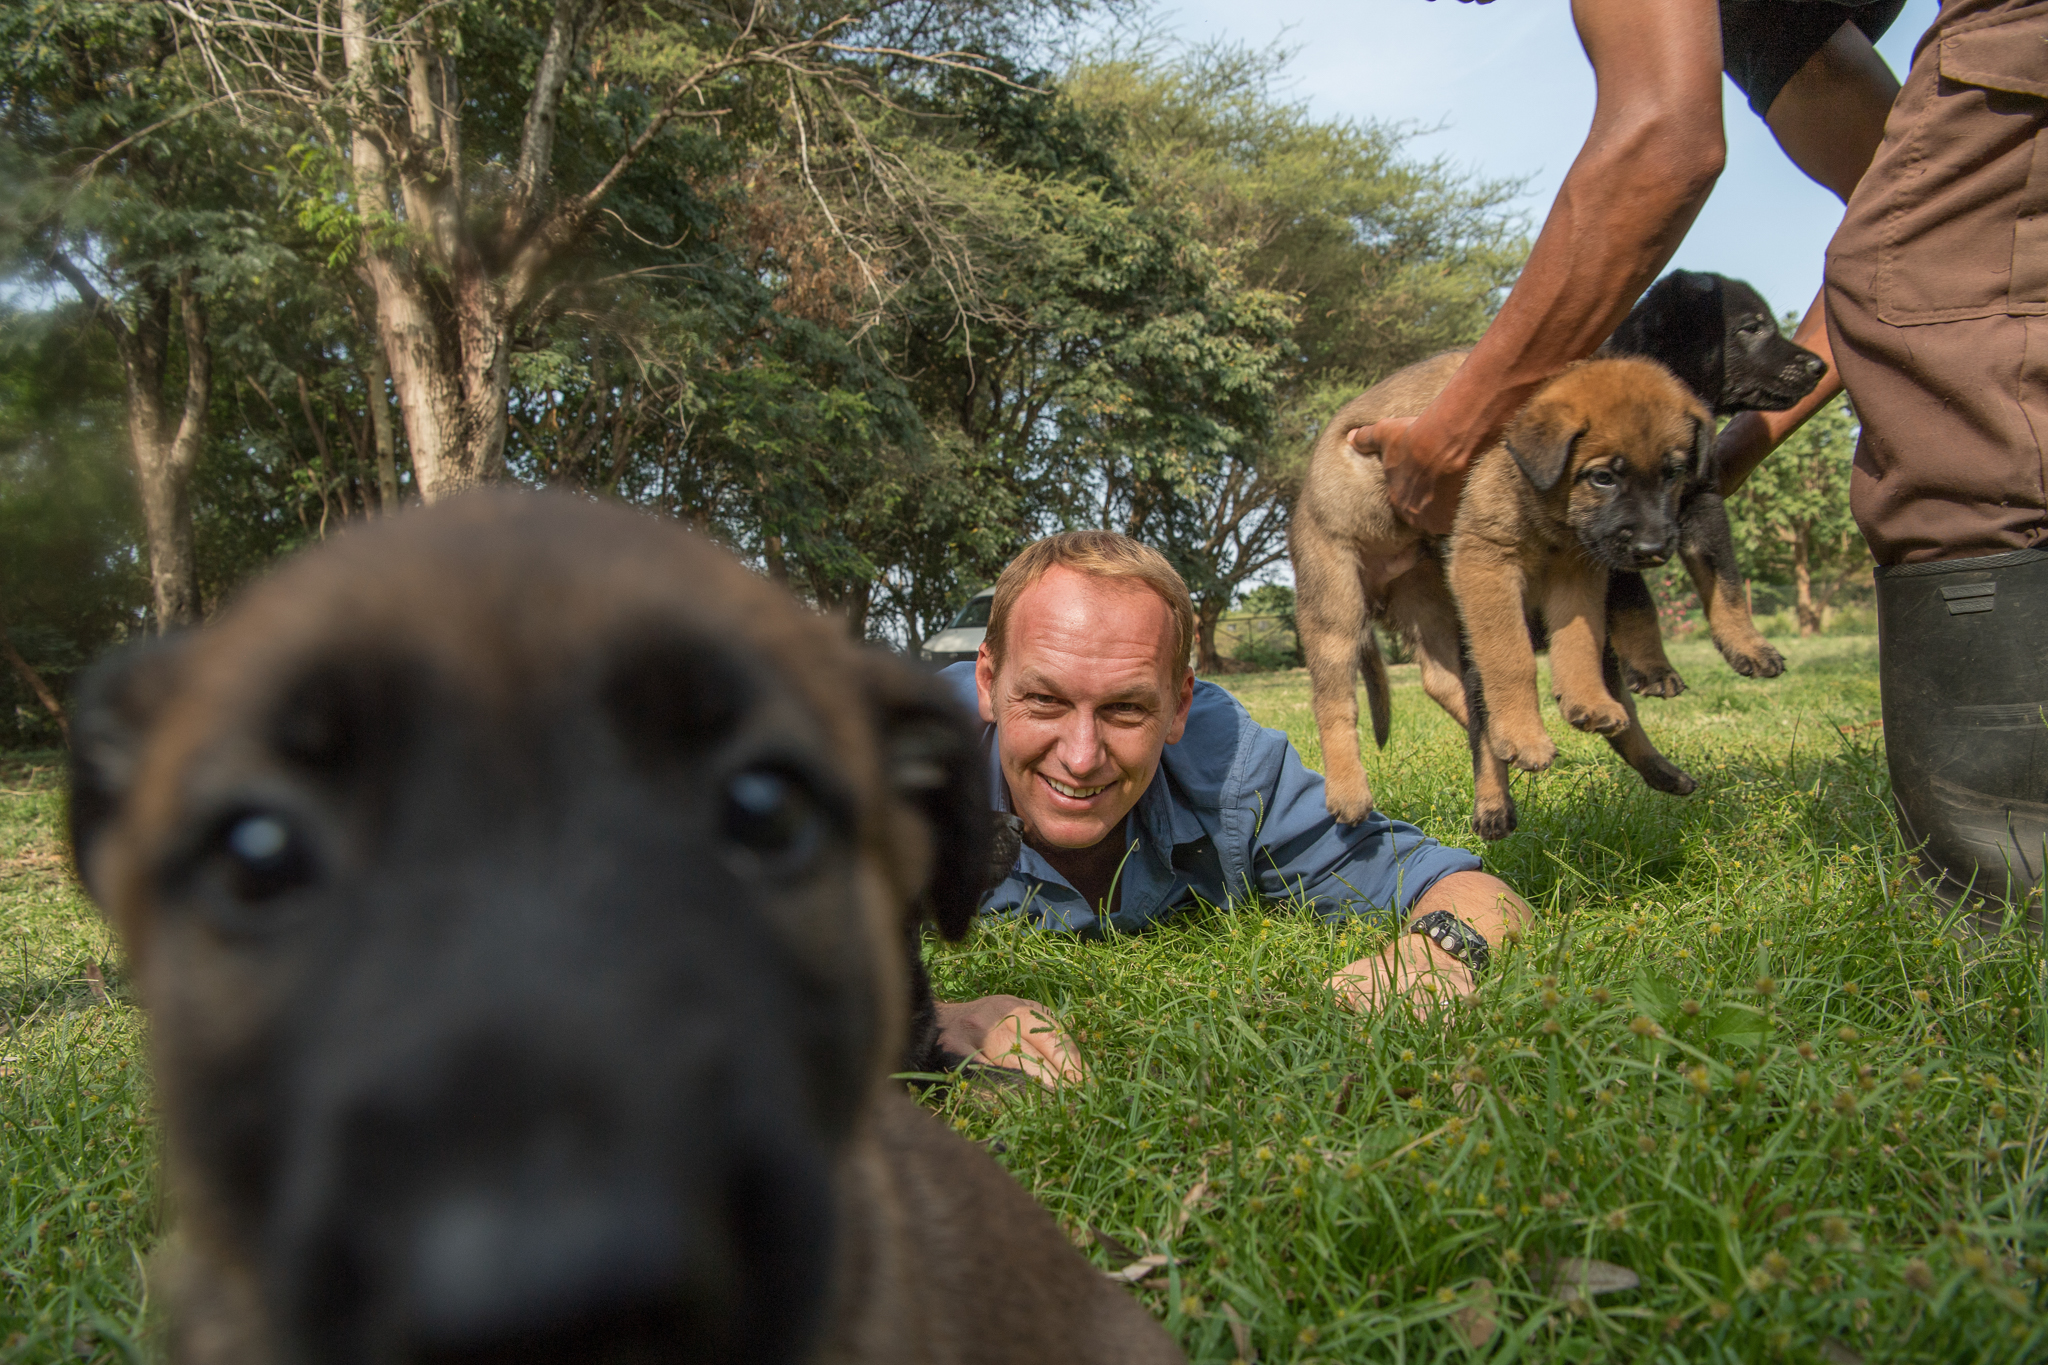 Will Powell, African Wildlife Foundation's Conservation Canine Director in Tanzania, snuggles a litter of puppies. These puppies will become tracker dogs and will help in efforts to fight poaching.